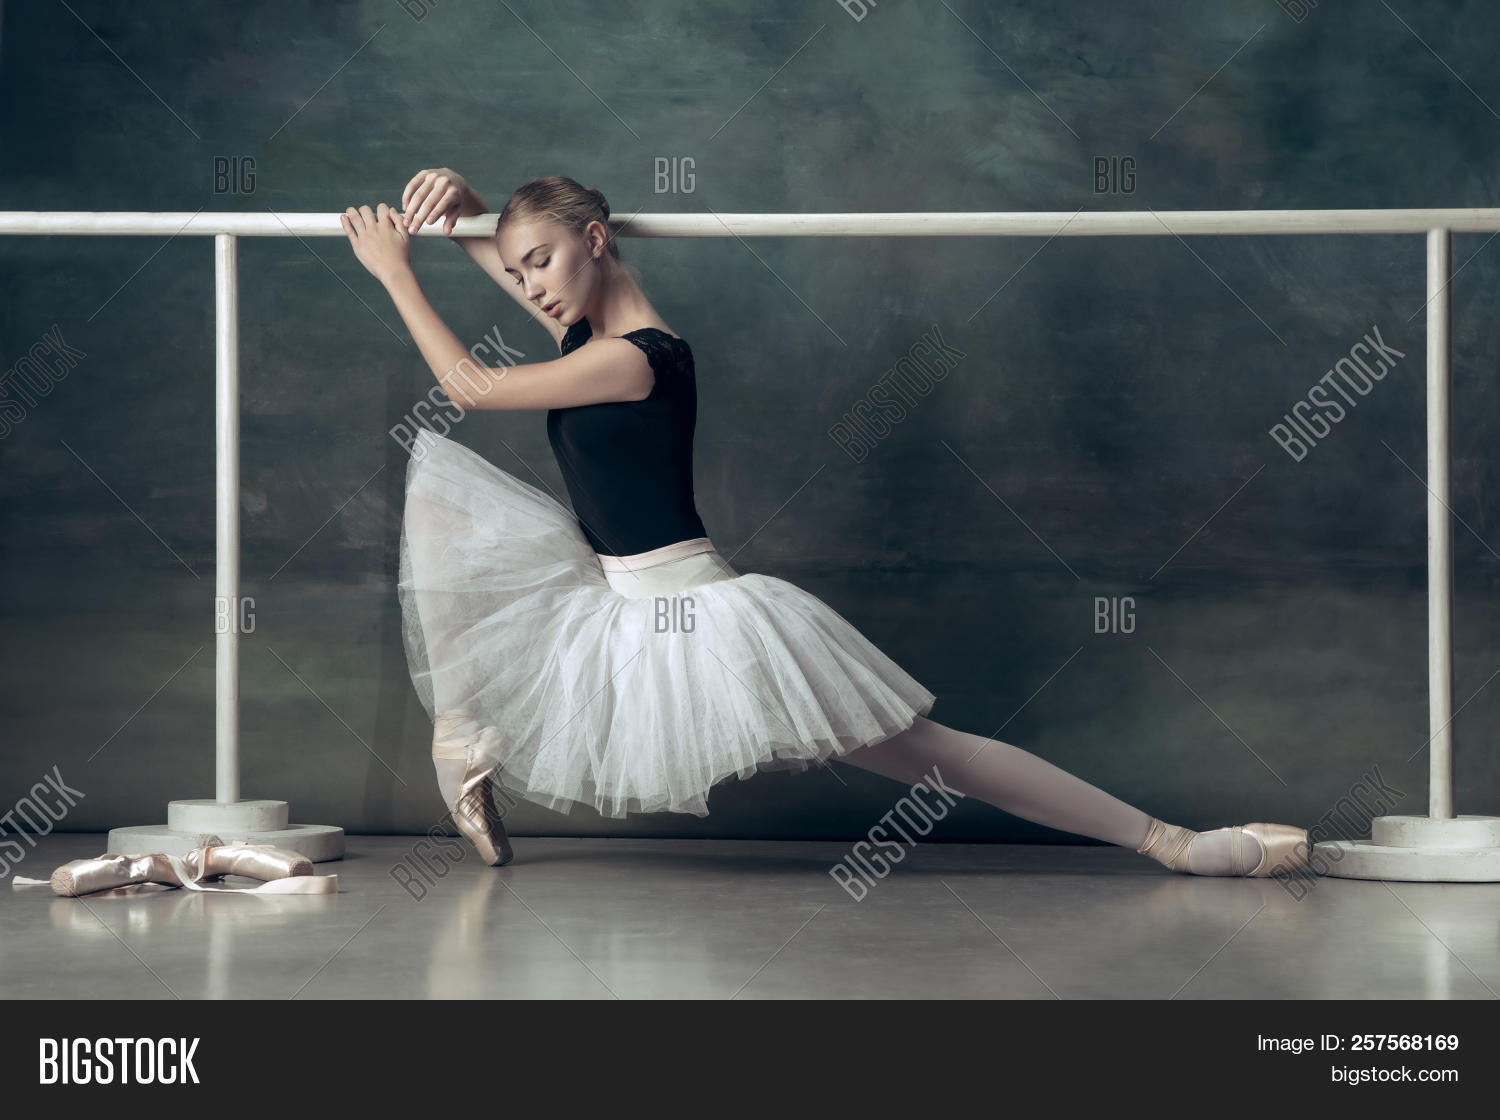 Apologise, but, young teen ballerina something